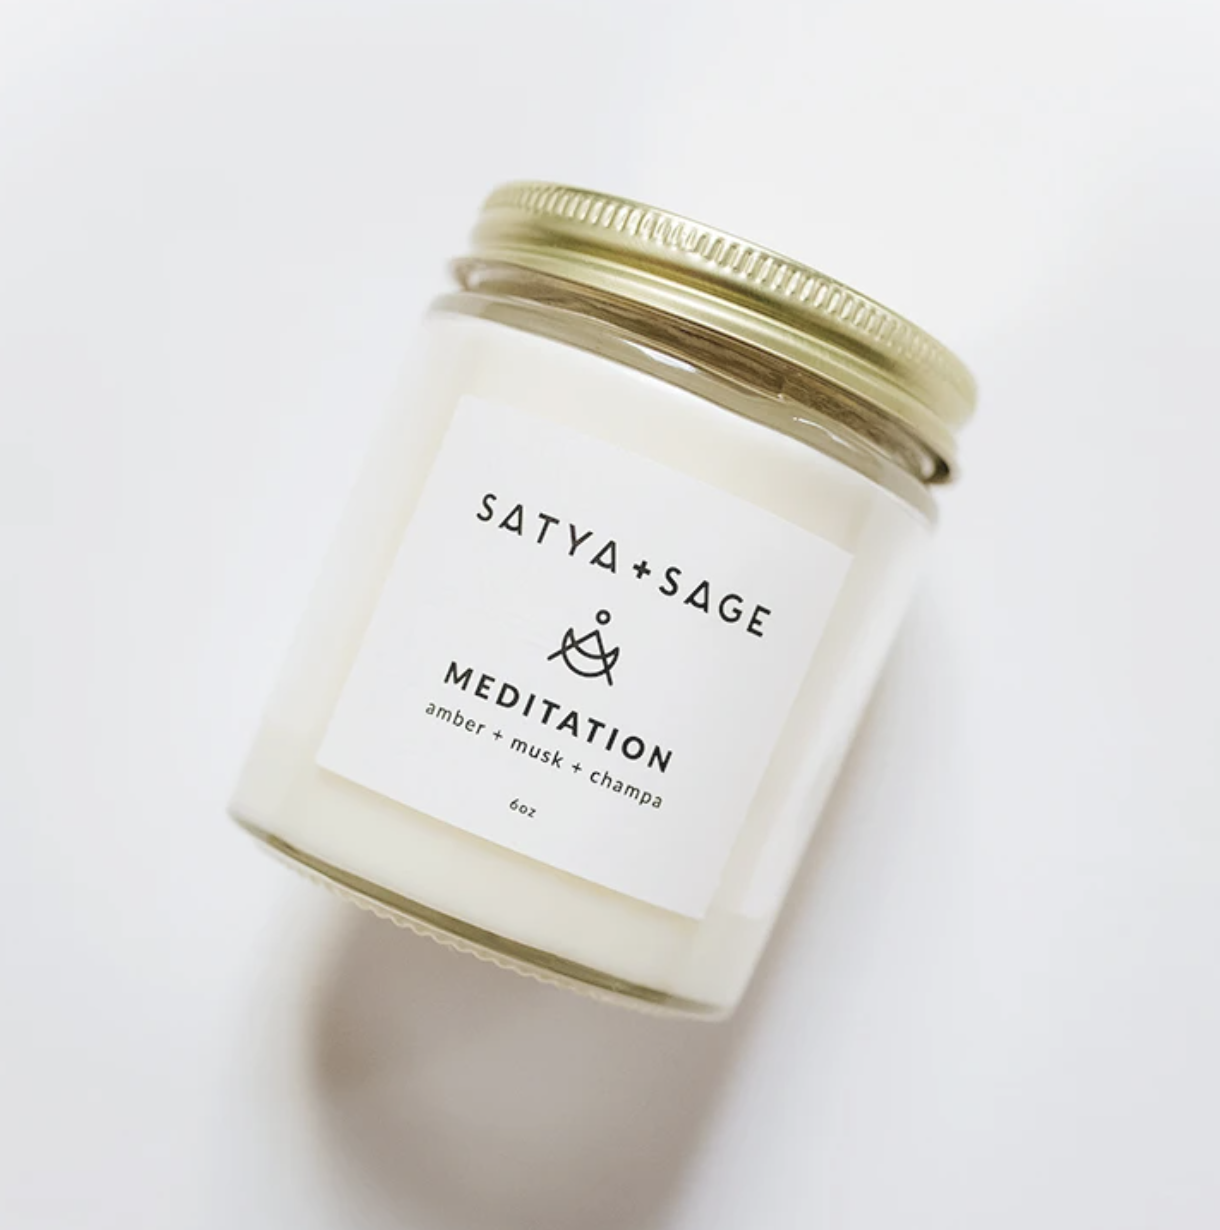 """A while candle that says """"Satya + Sage Meditation amber, musk, and champa"""""""